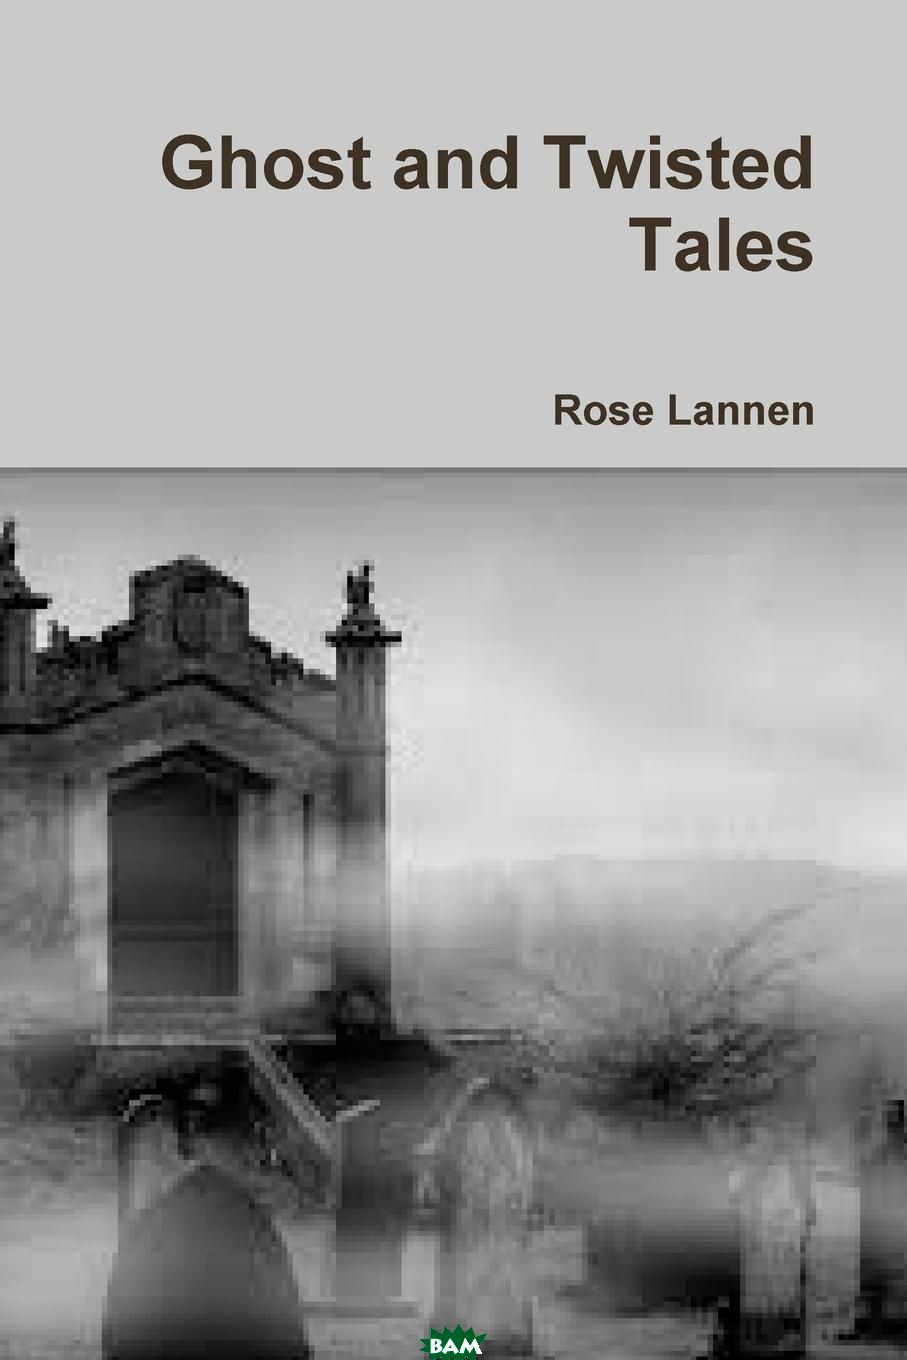 Ghost and Twisted Tales